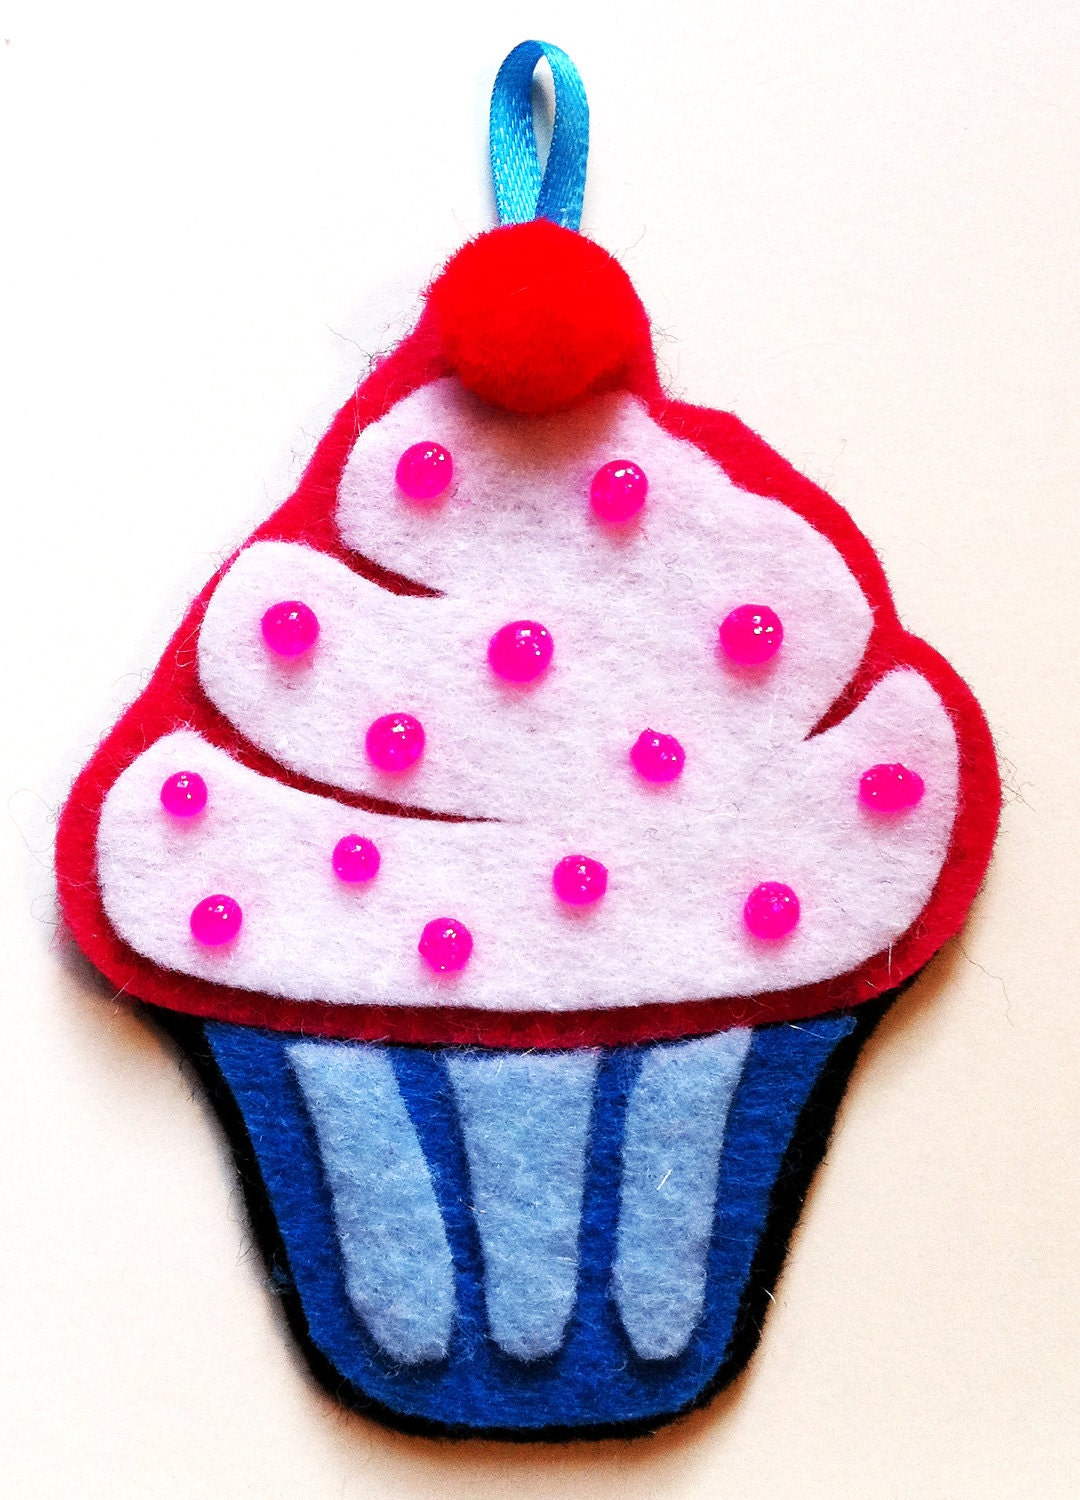 Cupcake Superstar Holiday Ornament - Kokma